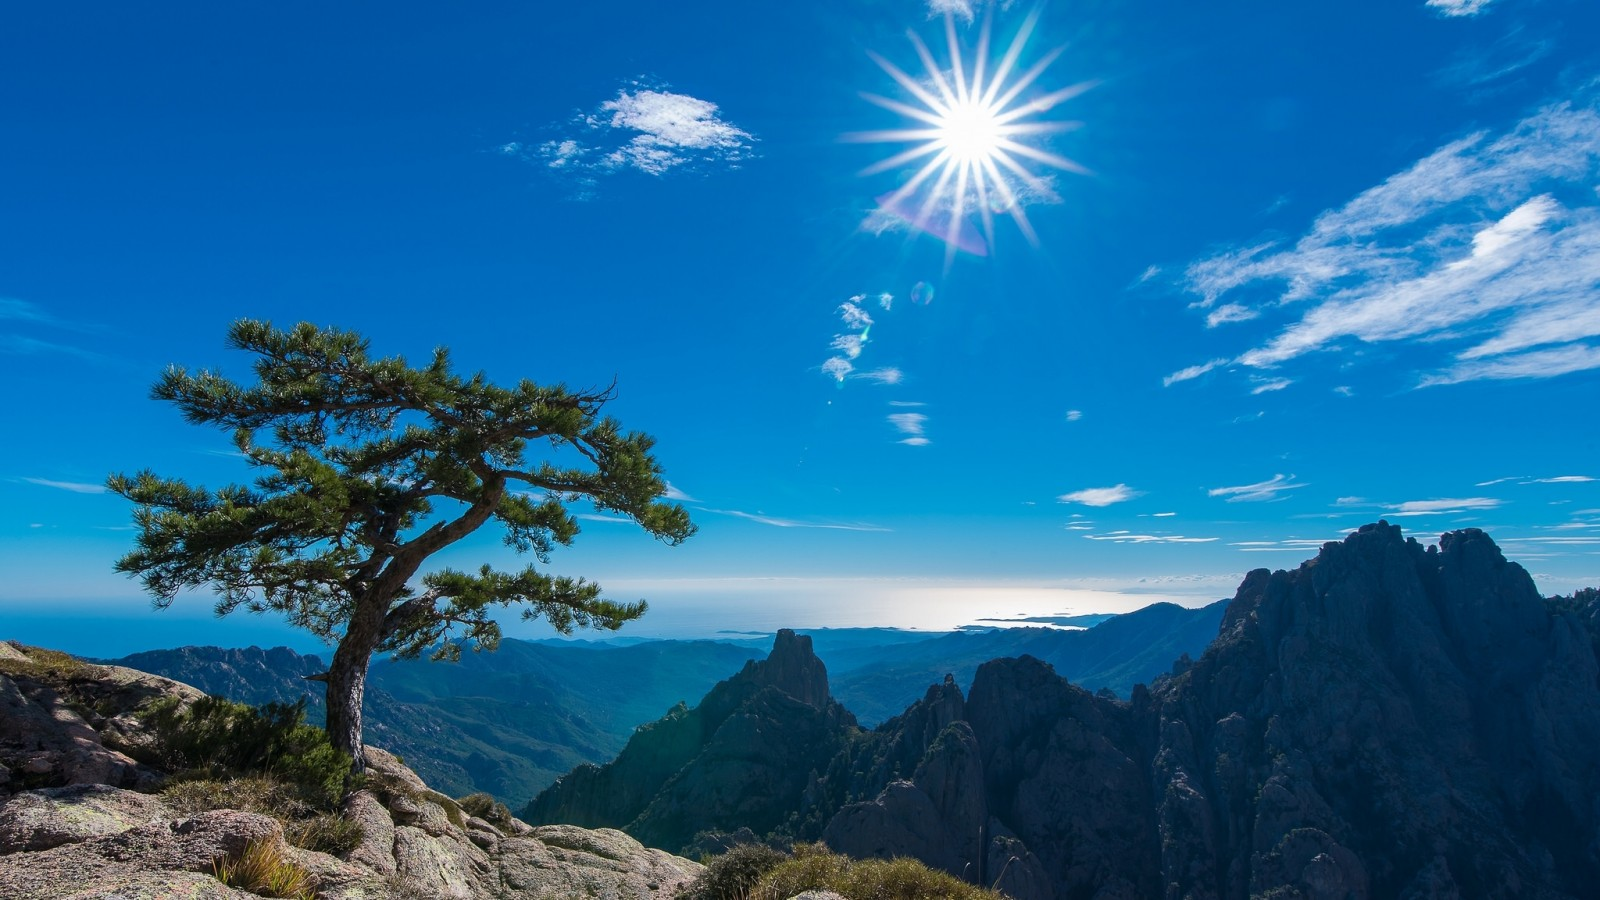 Sun Shining on Mountains in Corsica France Wallpaper and 1600x900